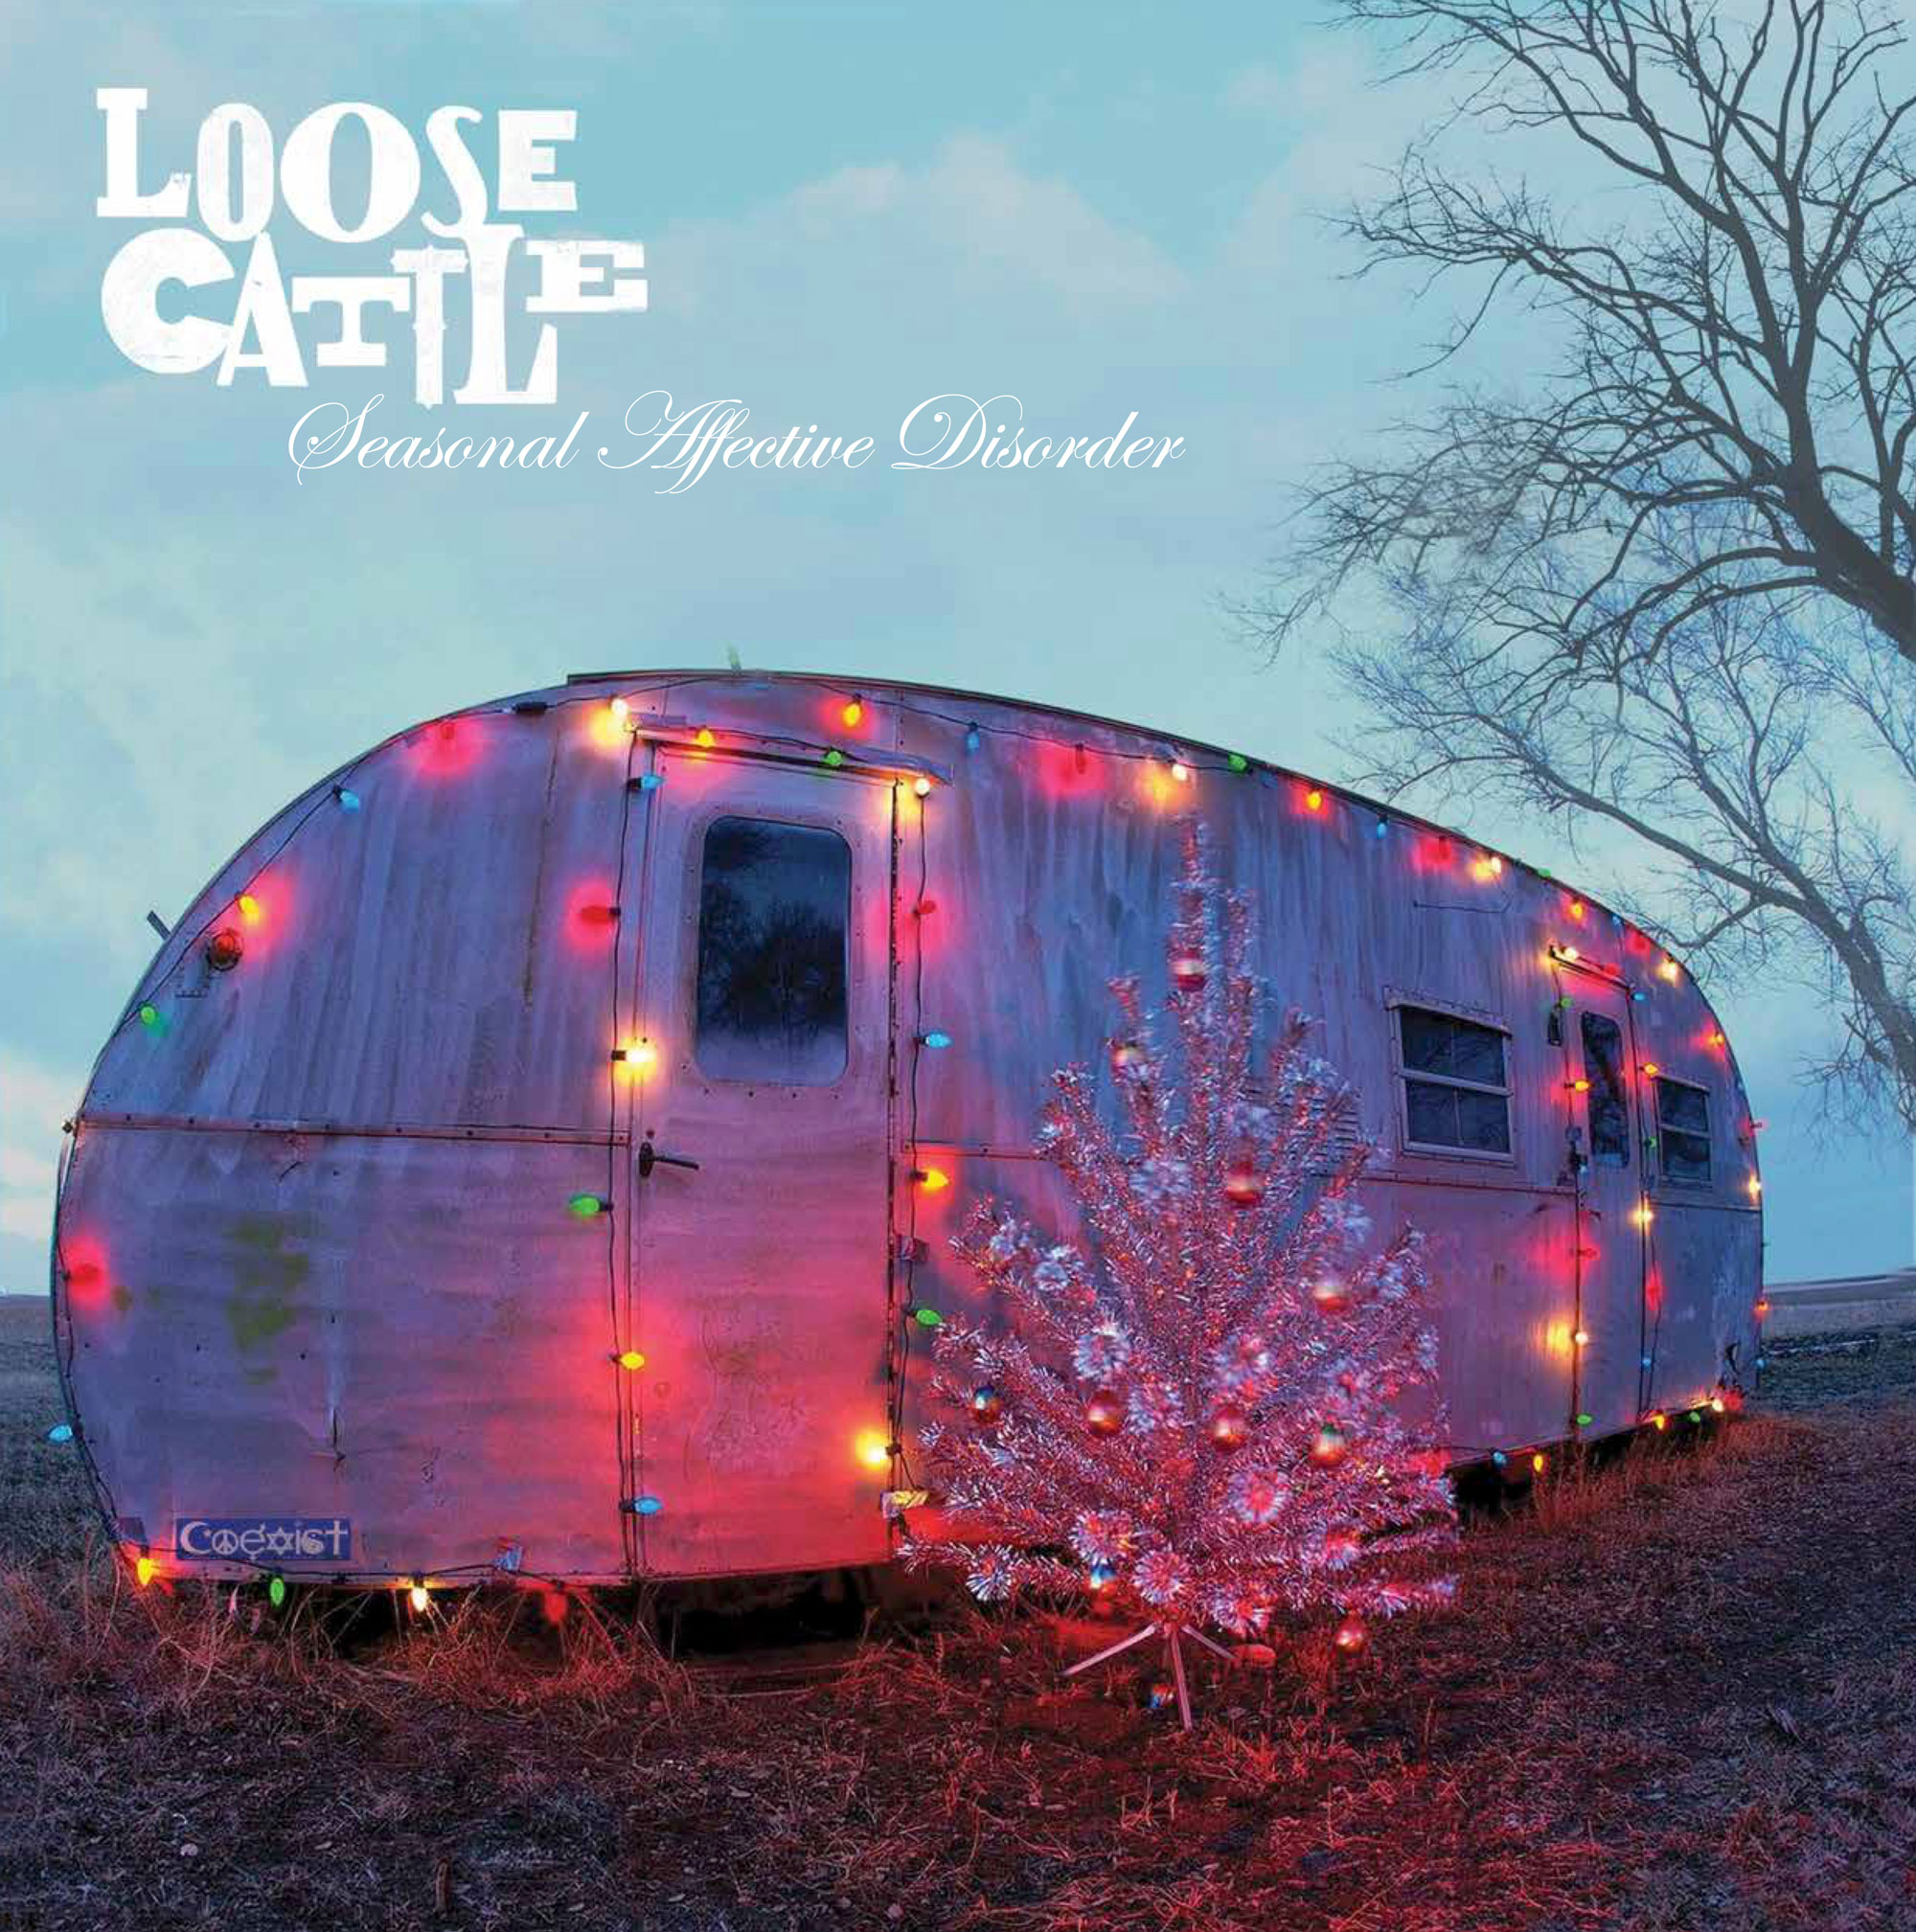 Loose Cattle Album Cover: Seasonal Affective Disorder